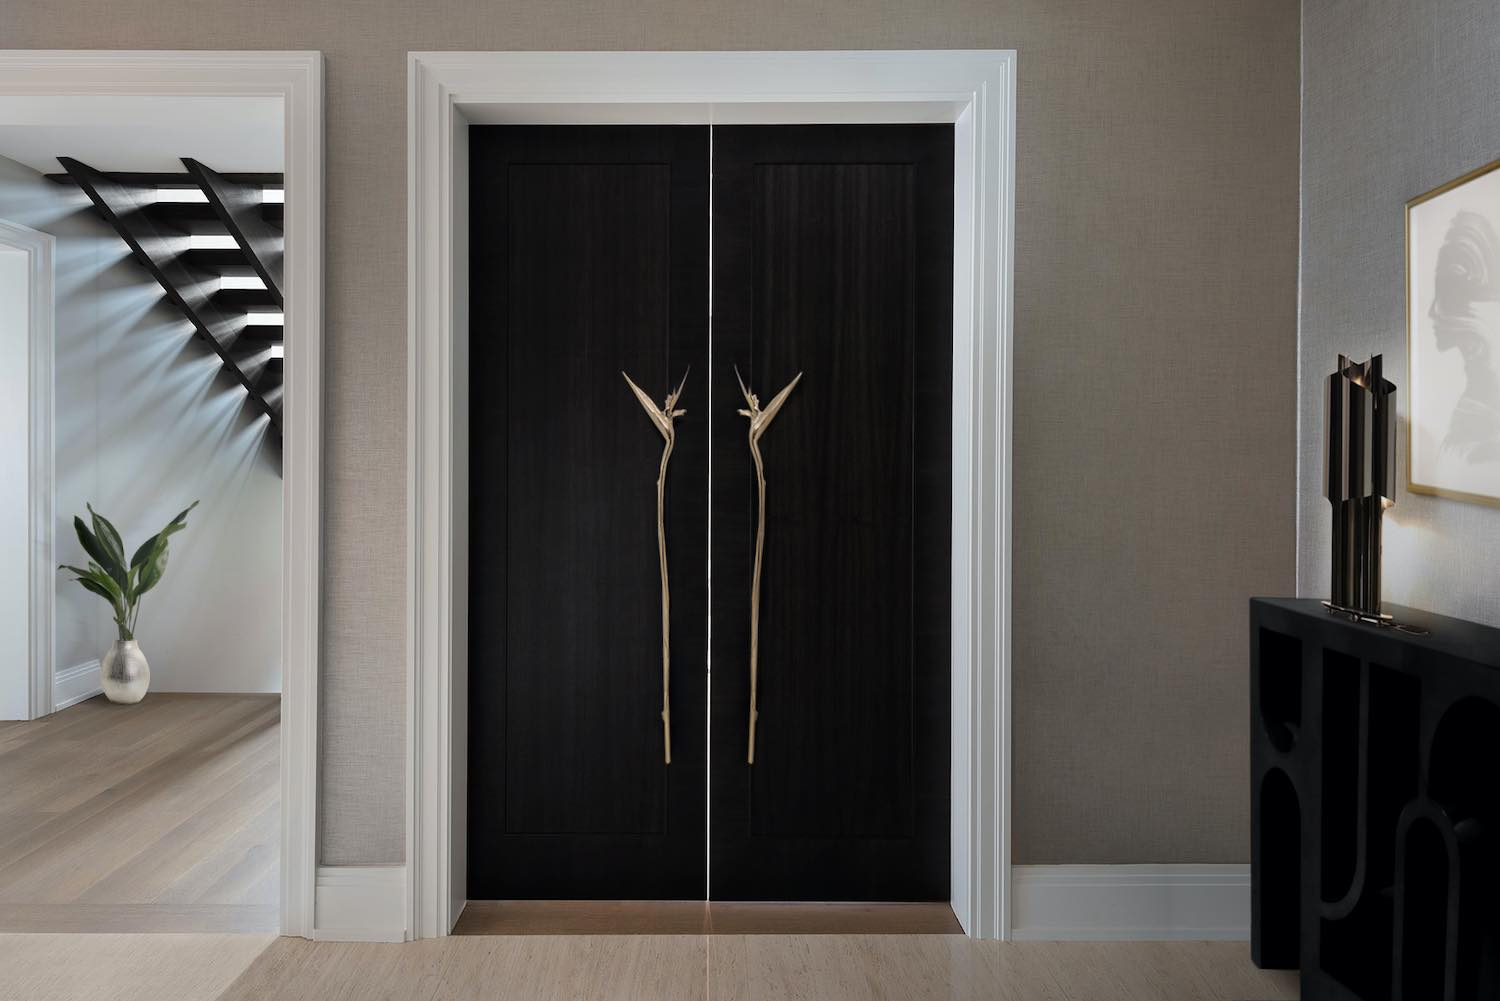 Decorative Hardware Trends for 2021